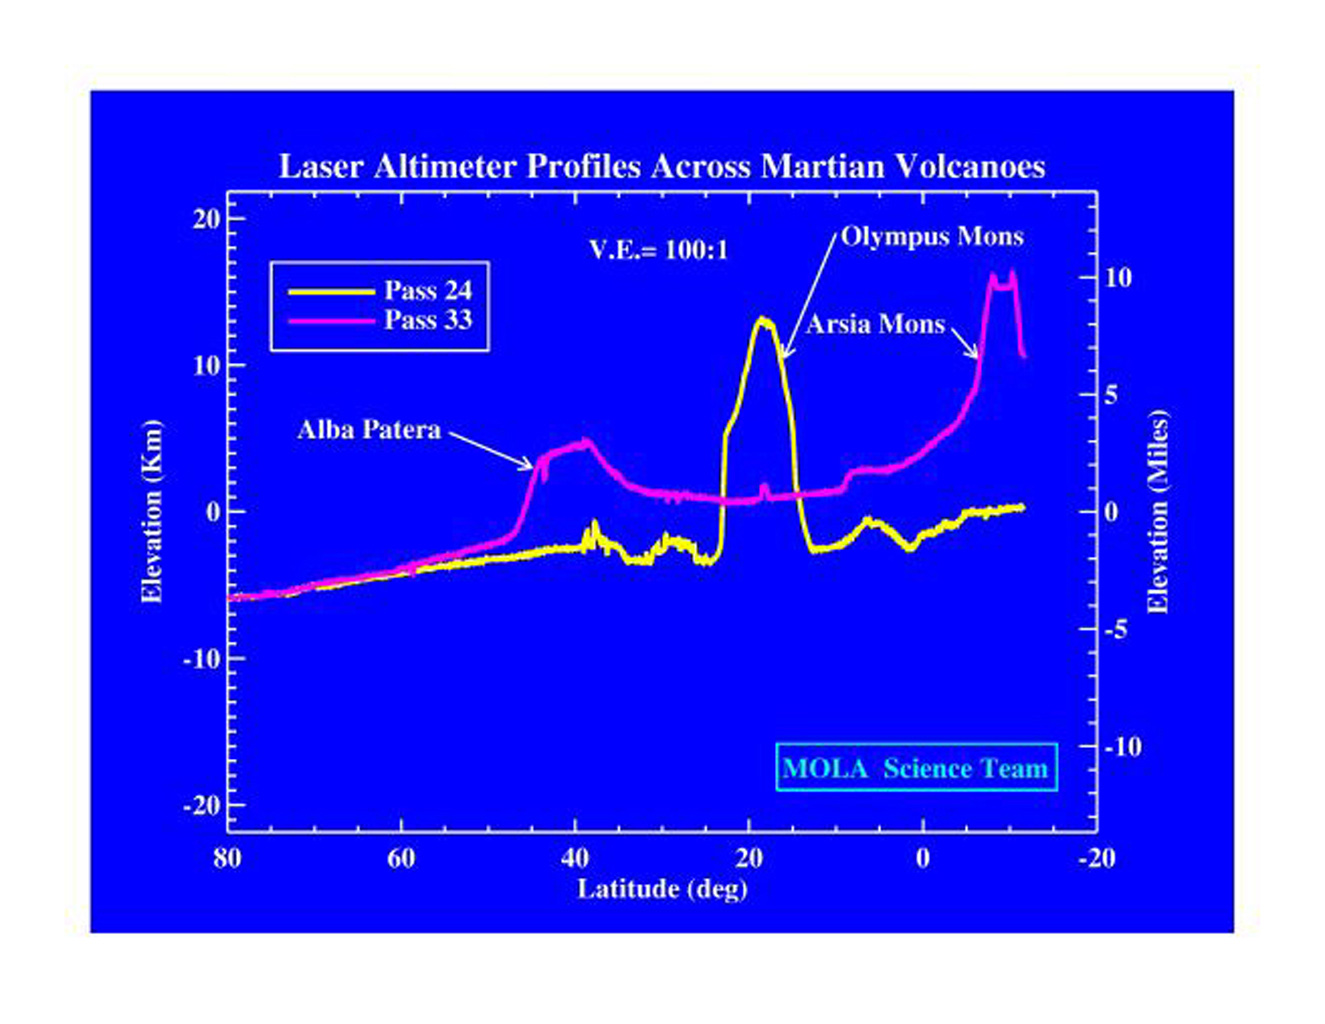 This laser altimeter profile across Martian volcanoes is from NASA's Mars Global Surveyor.